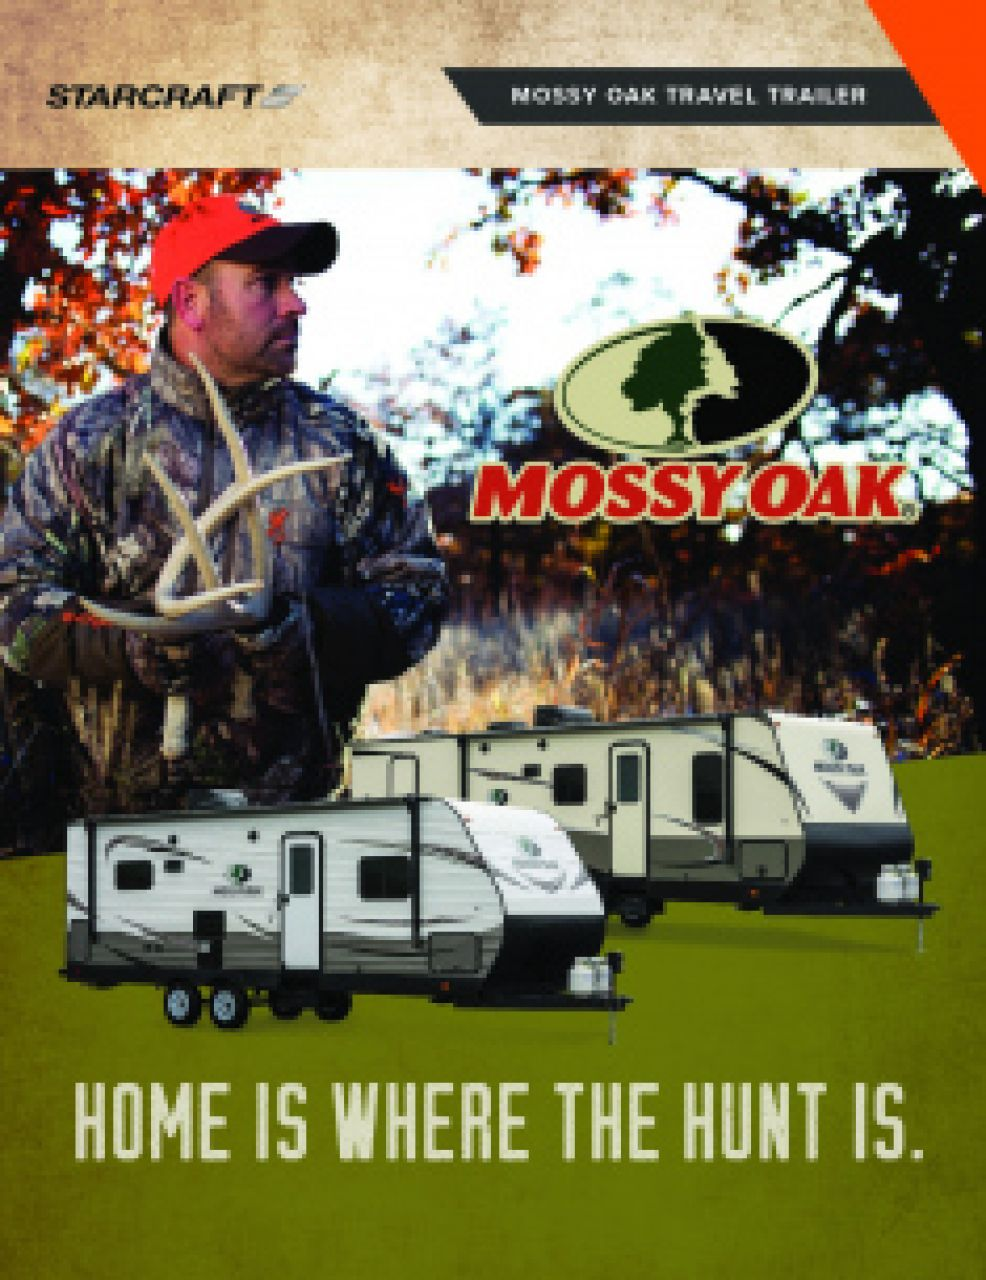 2019 Starcraft Mossy Oak Lite RV Brochure Cover